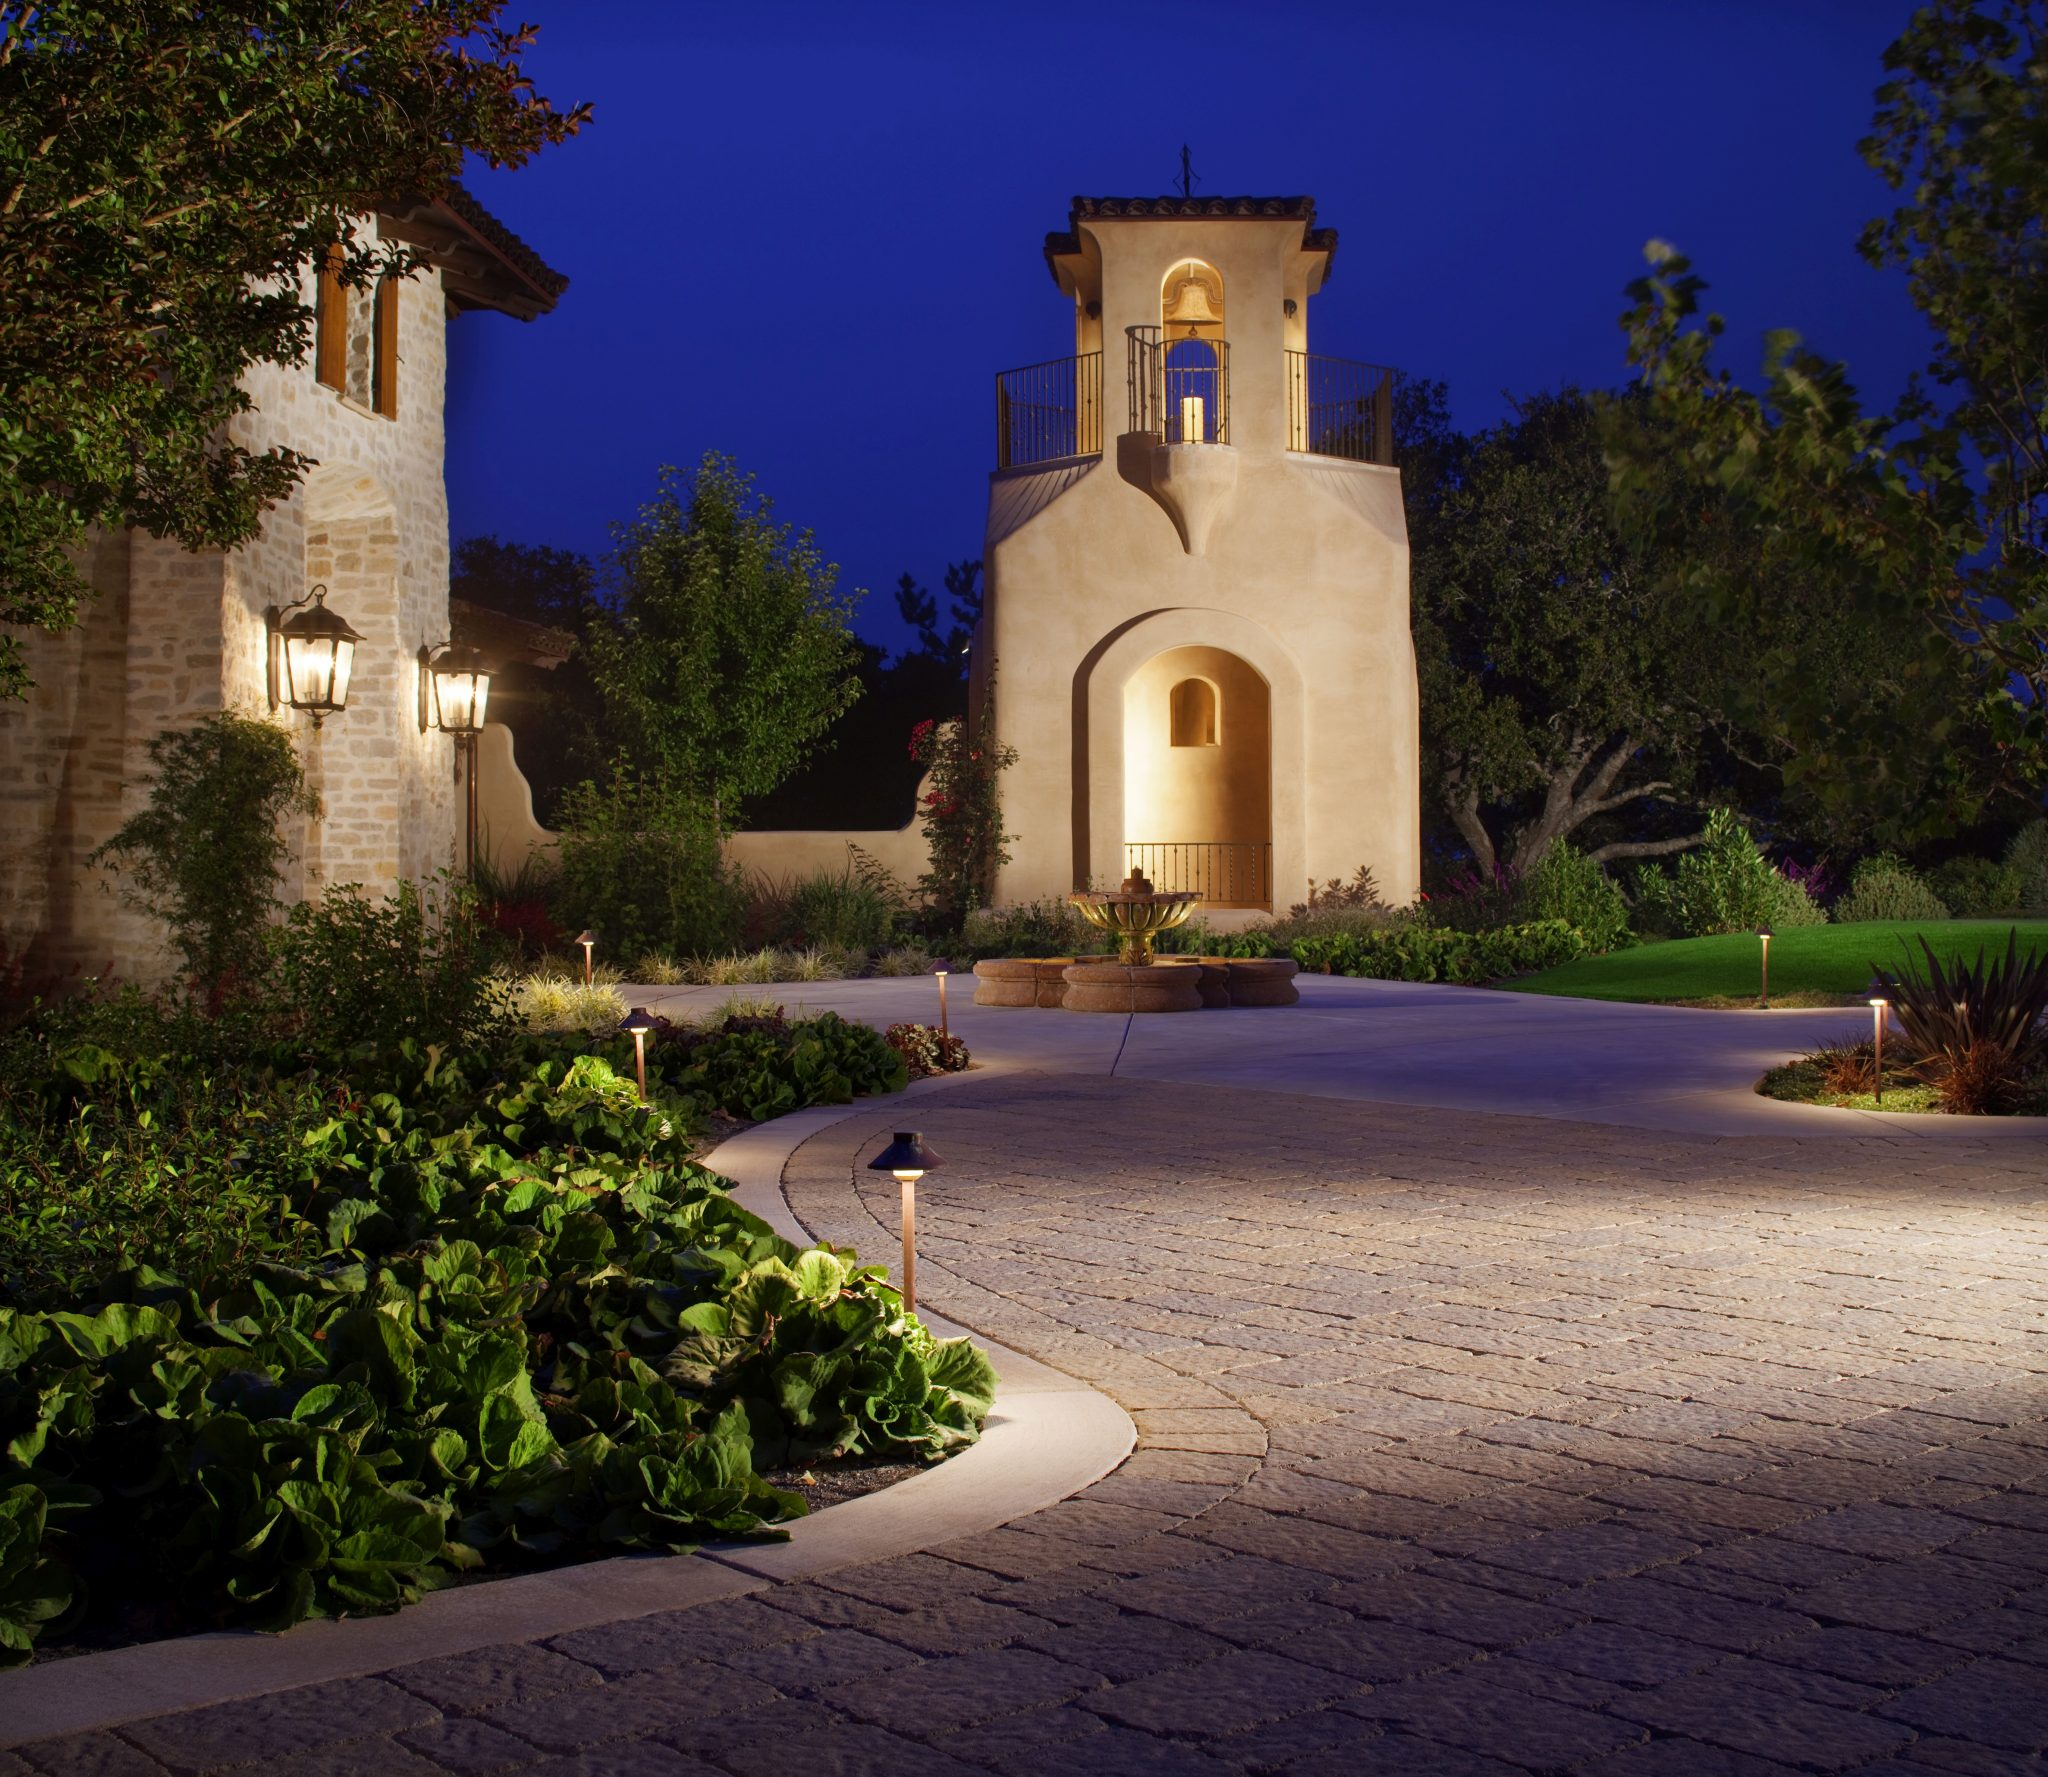 5 Pathway Lighting Tips Ideas Walkway Lights Guide: Driveway Lights Guide: Outdoor Lighting Ideas + Tips